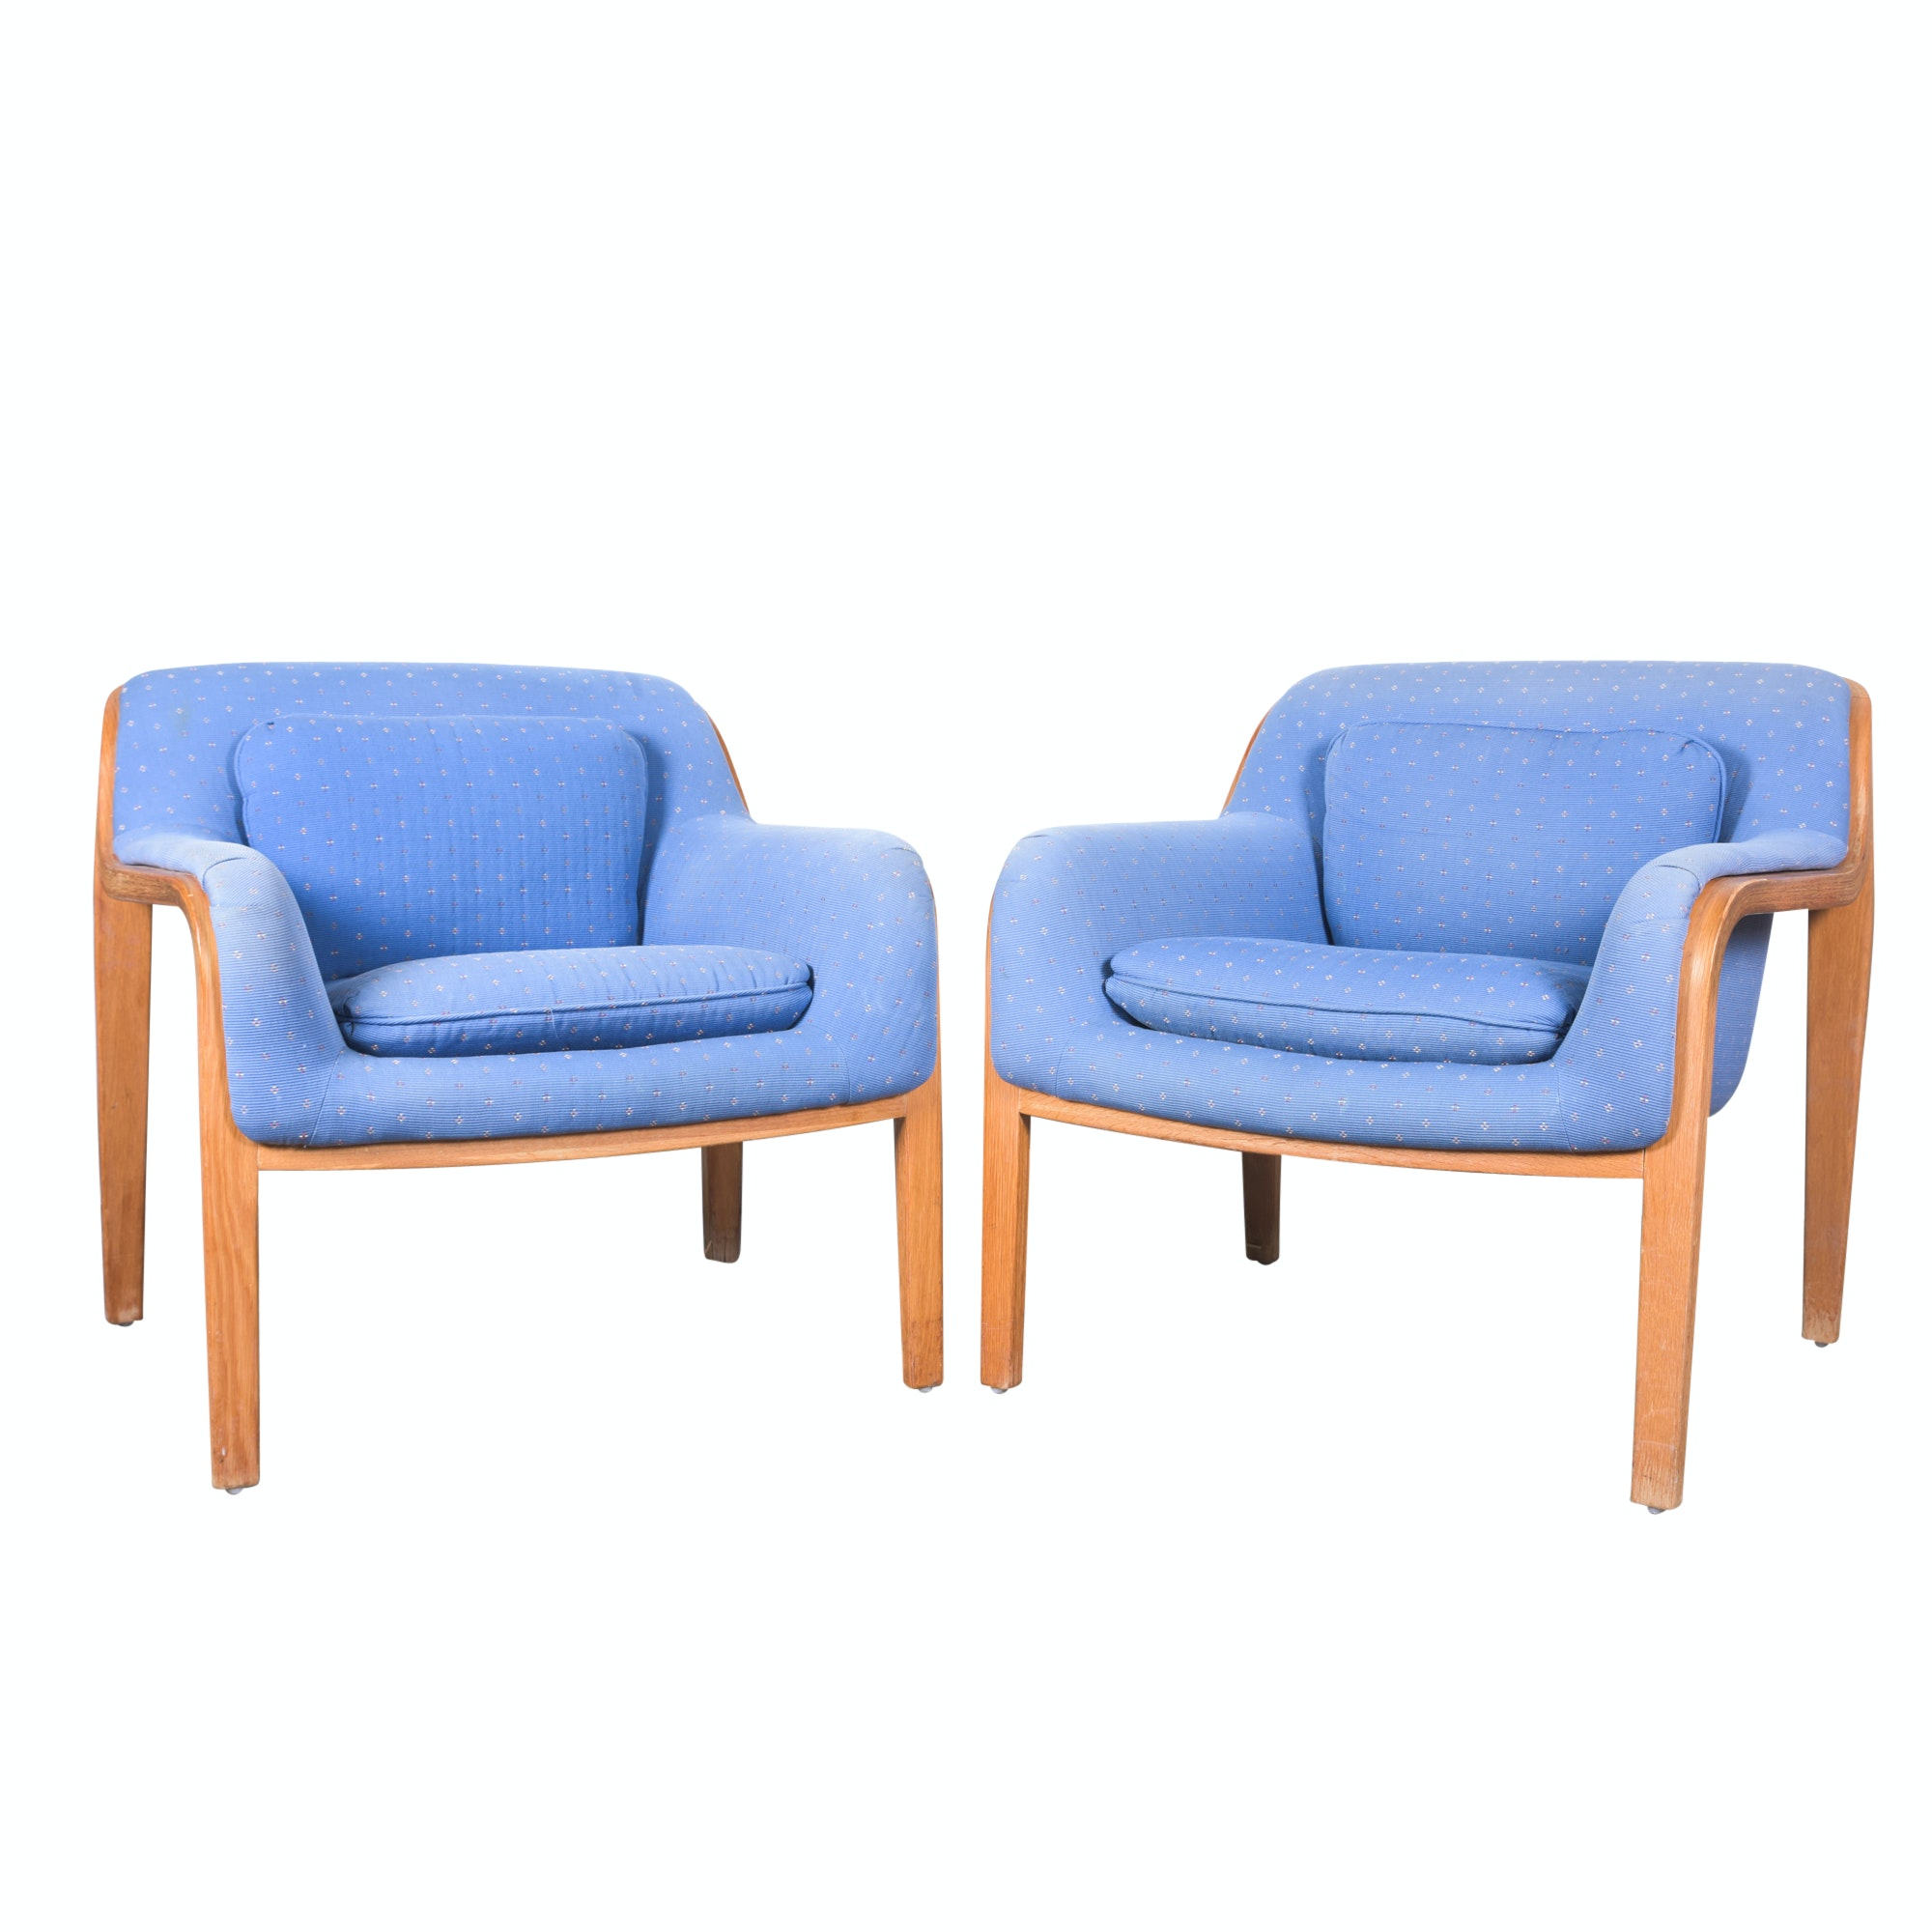 "Mid Century Modern ""Stephens"" Style Walnut Lounge Chairs, Mid-20th Century"